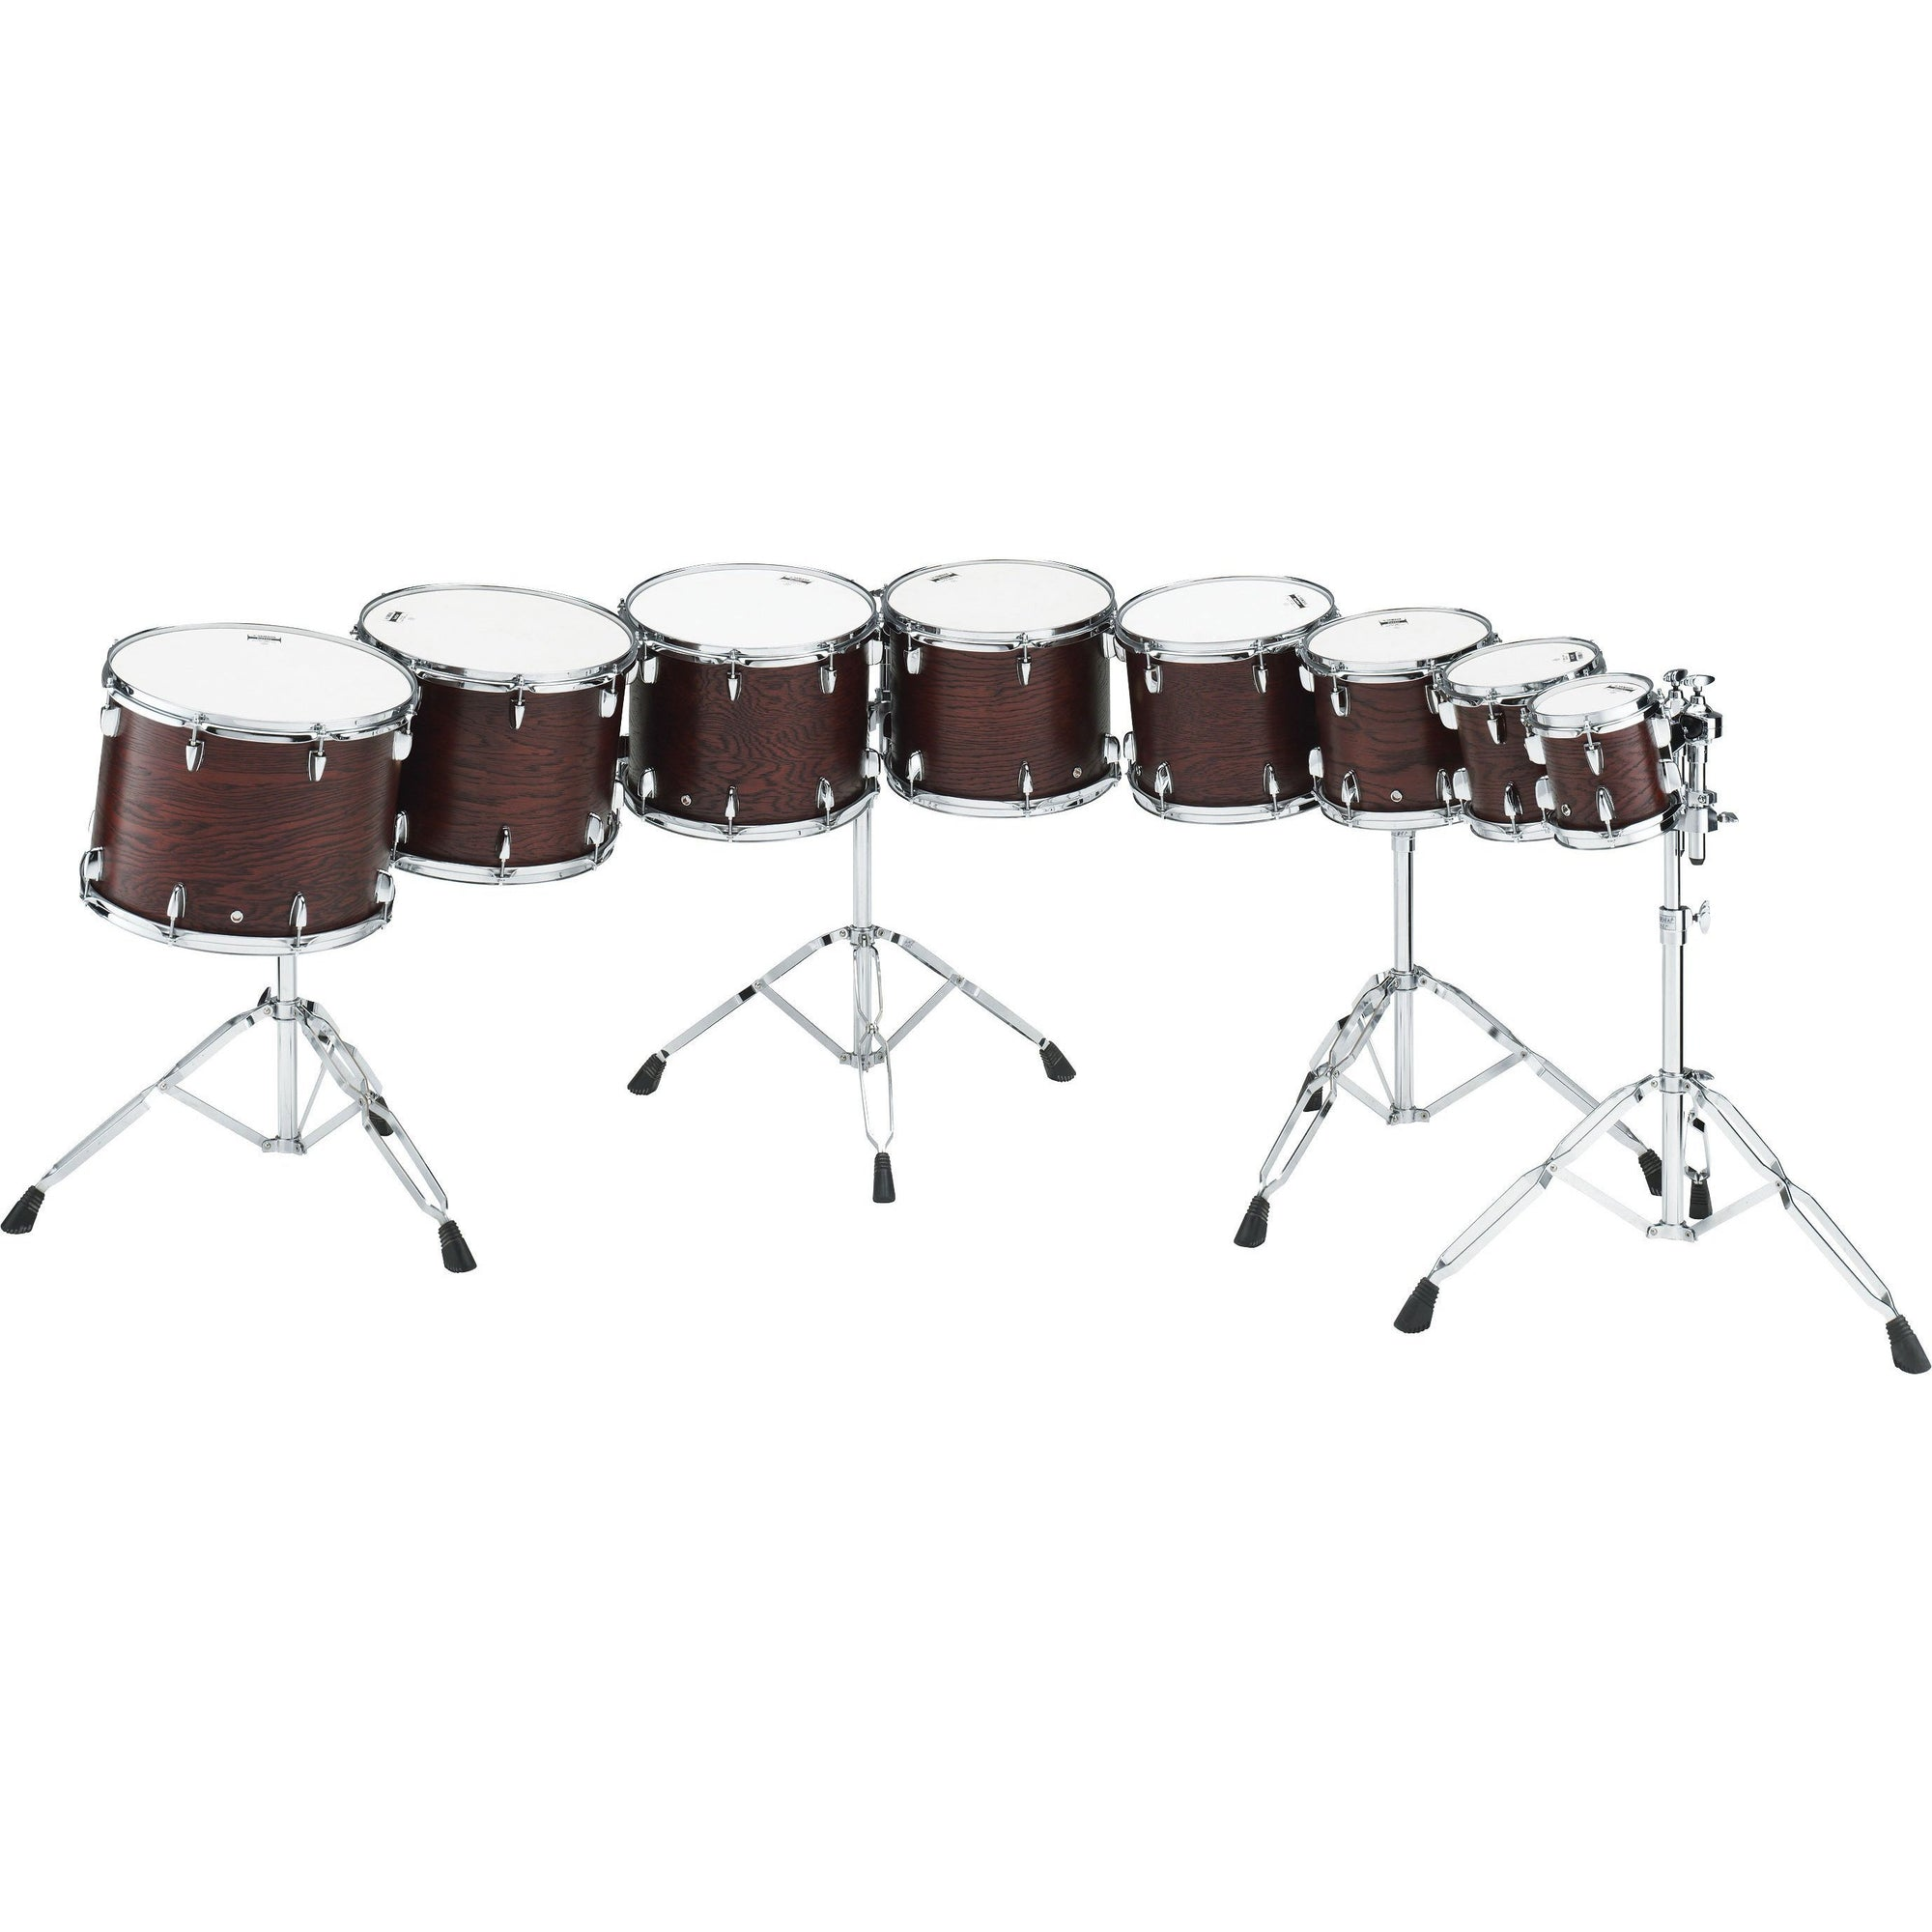 Yamaha - CT-9000 Series - Double-Headed Tom Toms with Oak Shell-Percussion-Yamaha-Music Elements